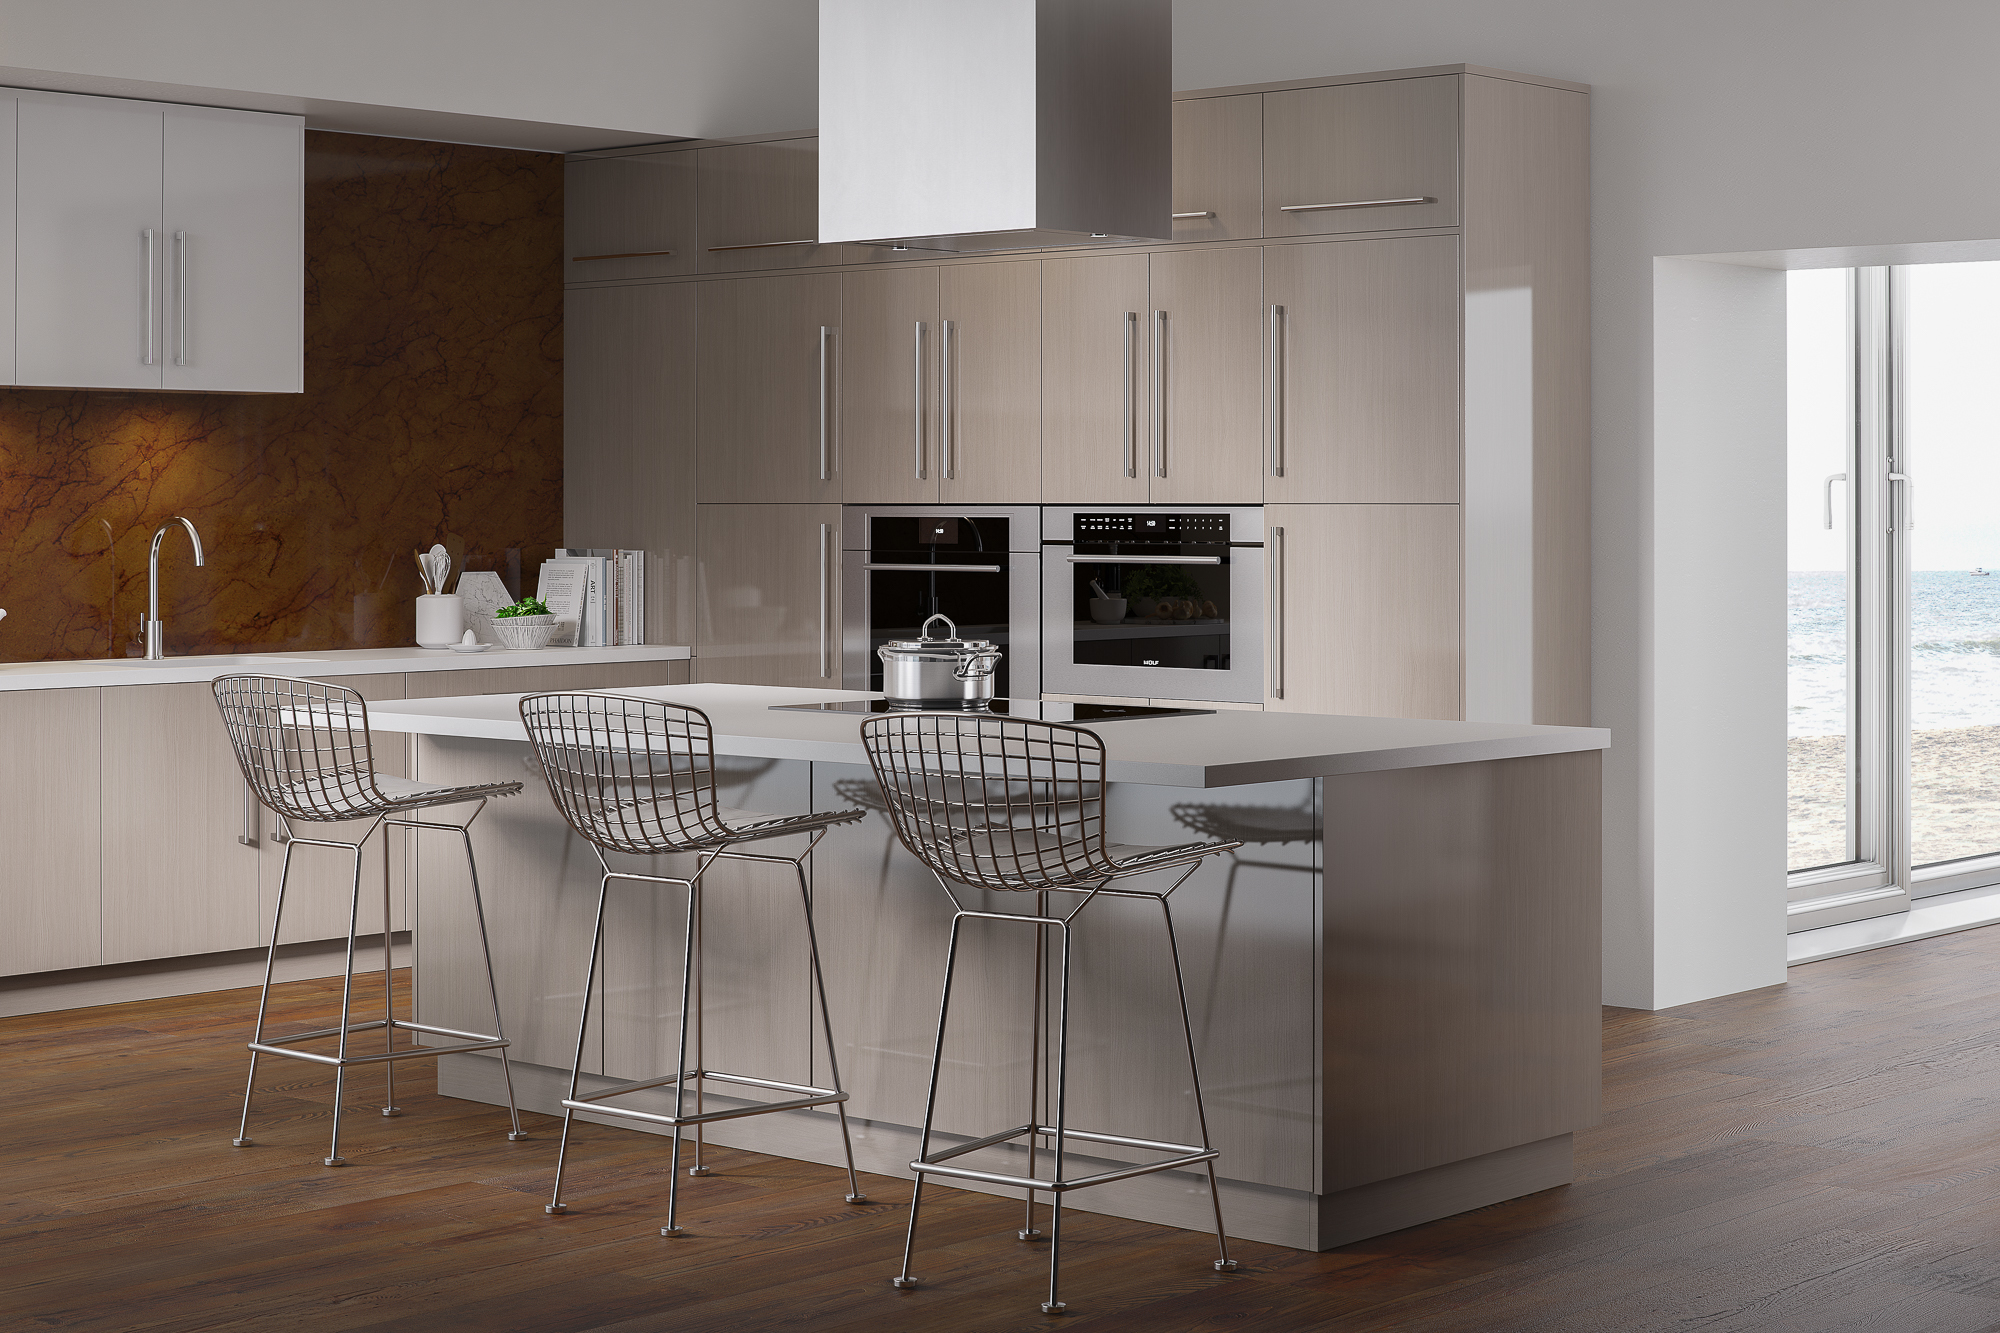 High-gloss acrylic kitchen cabinets with ocean view in wired mercury and white high gloss by Showplace EVO view 2